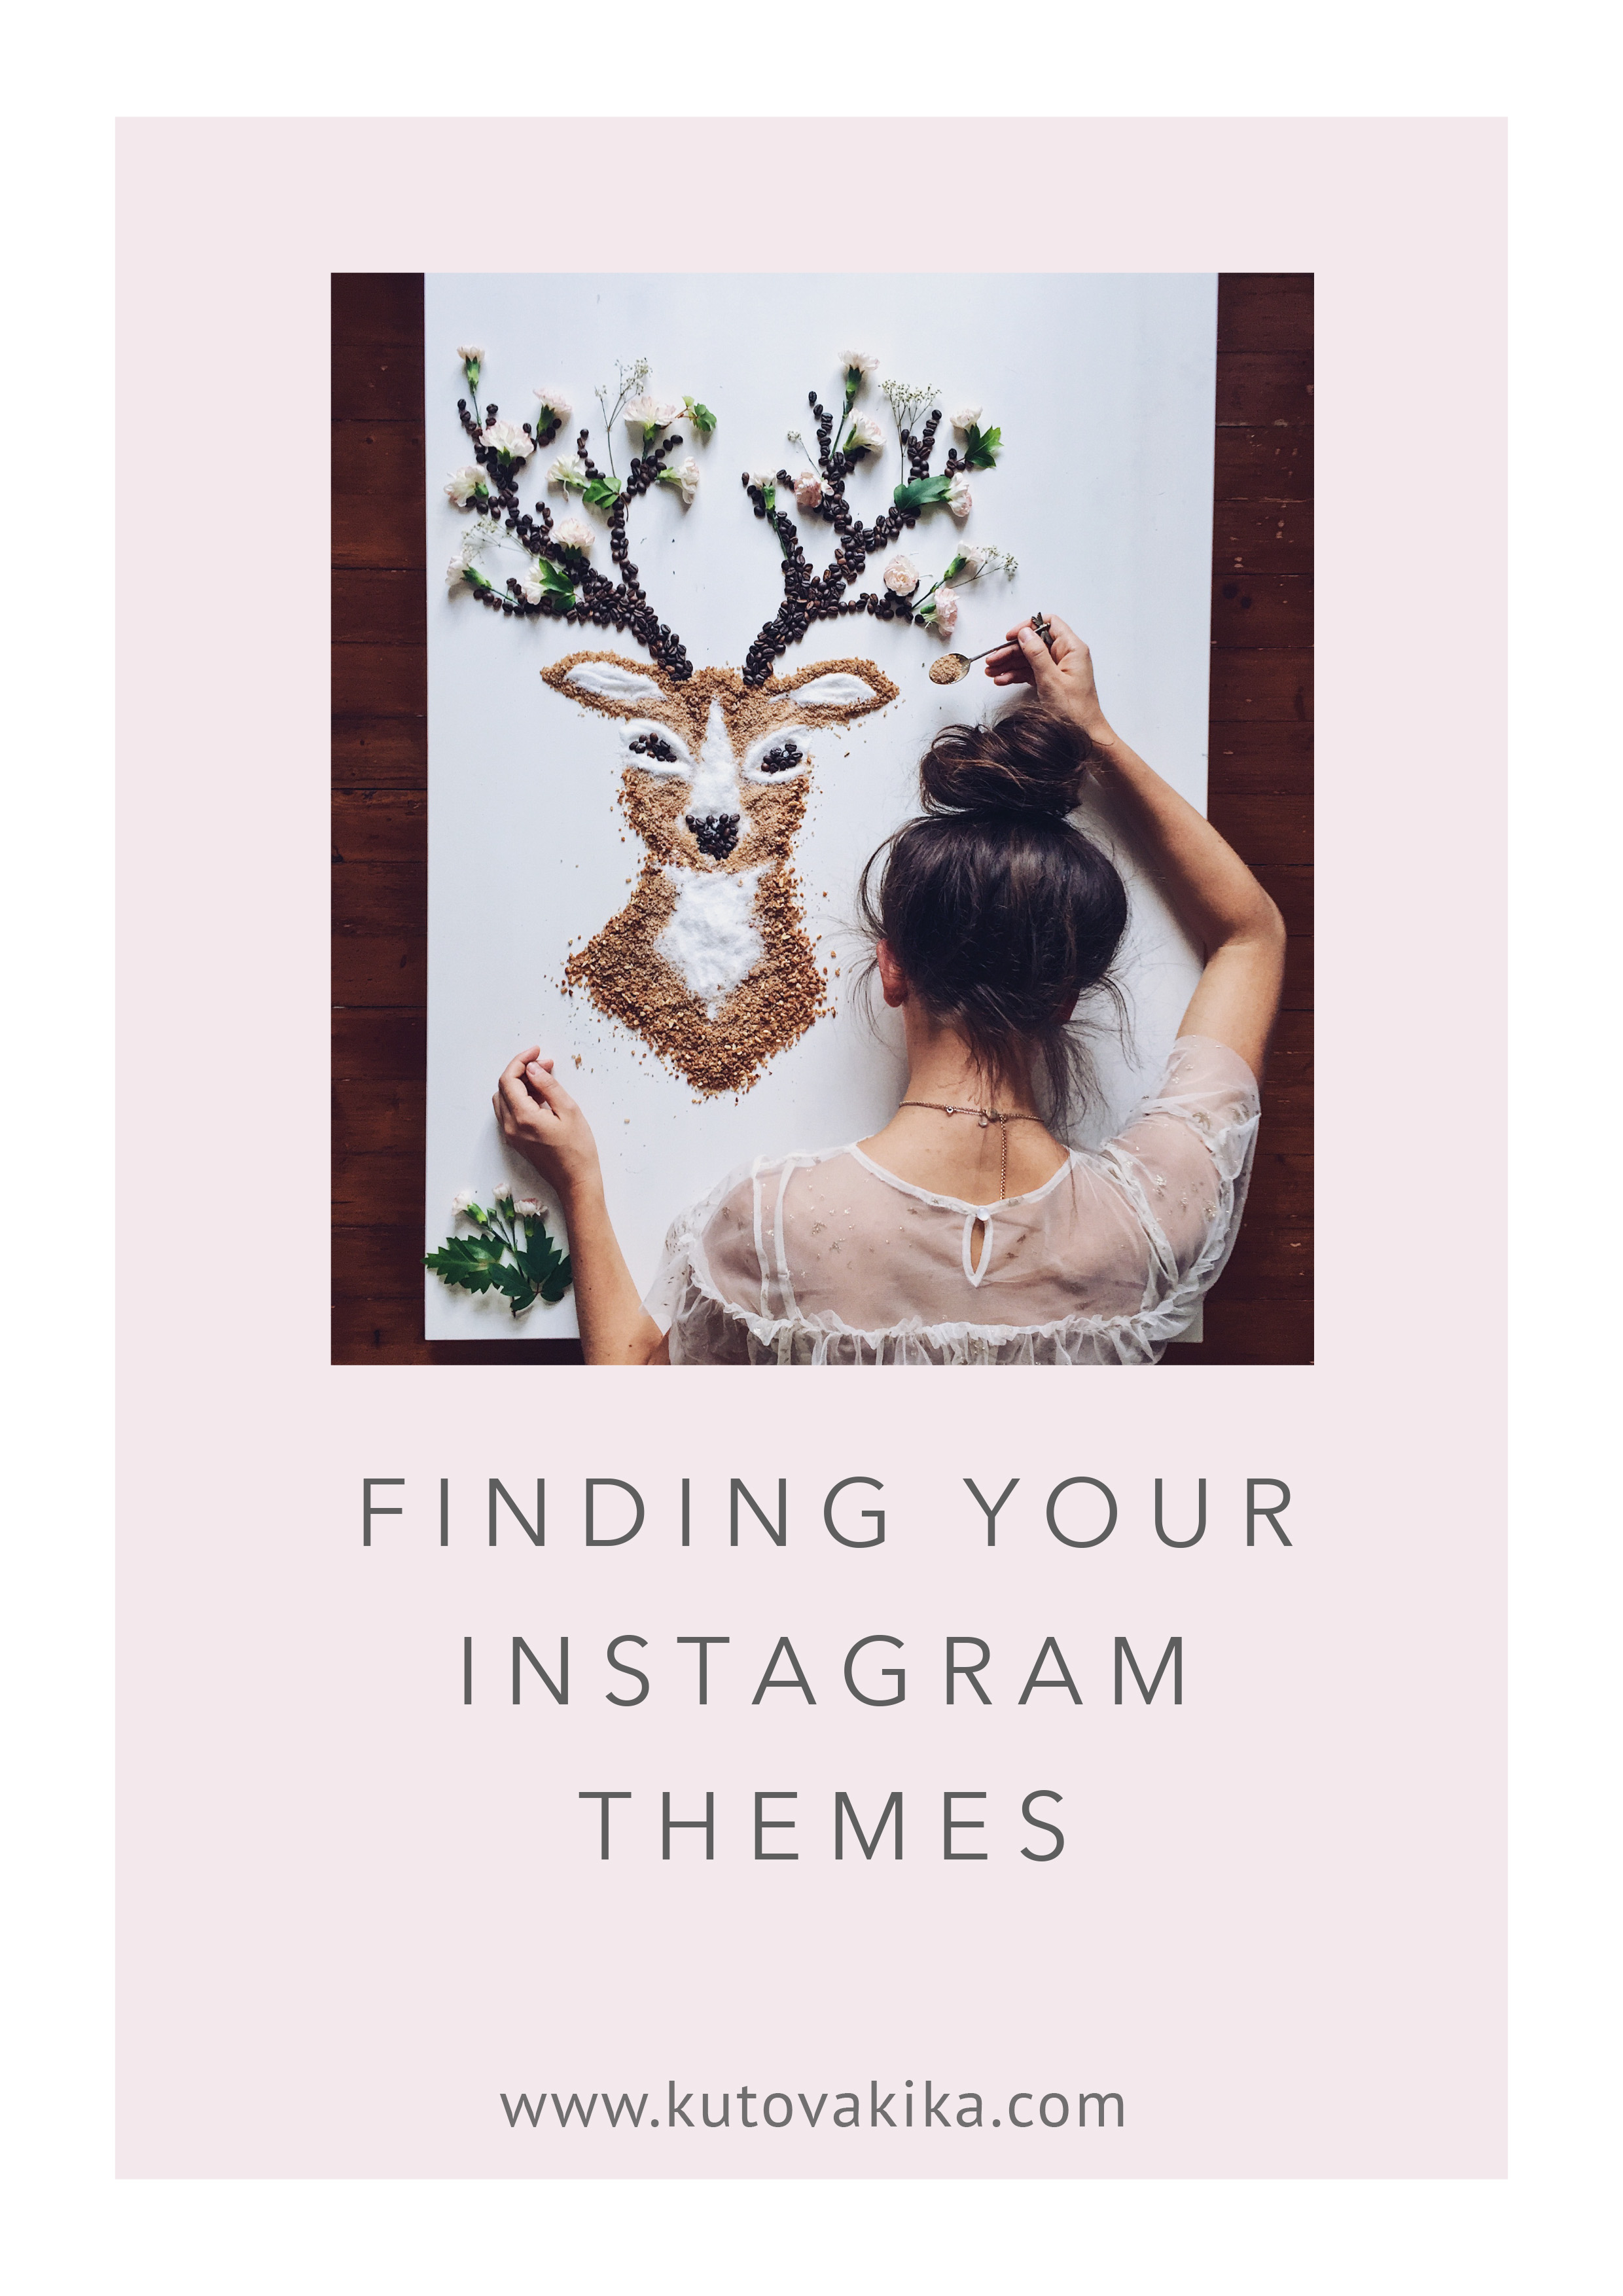 Free e-book-Finding your Instagram themes- 5 steps to gain more clarity and new ideas for photos